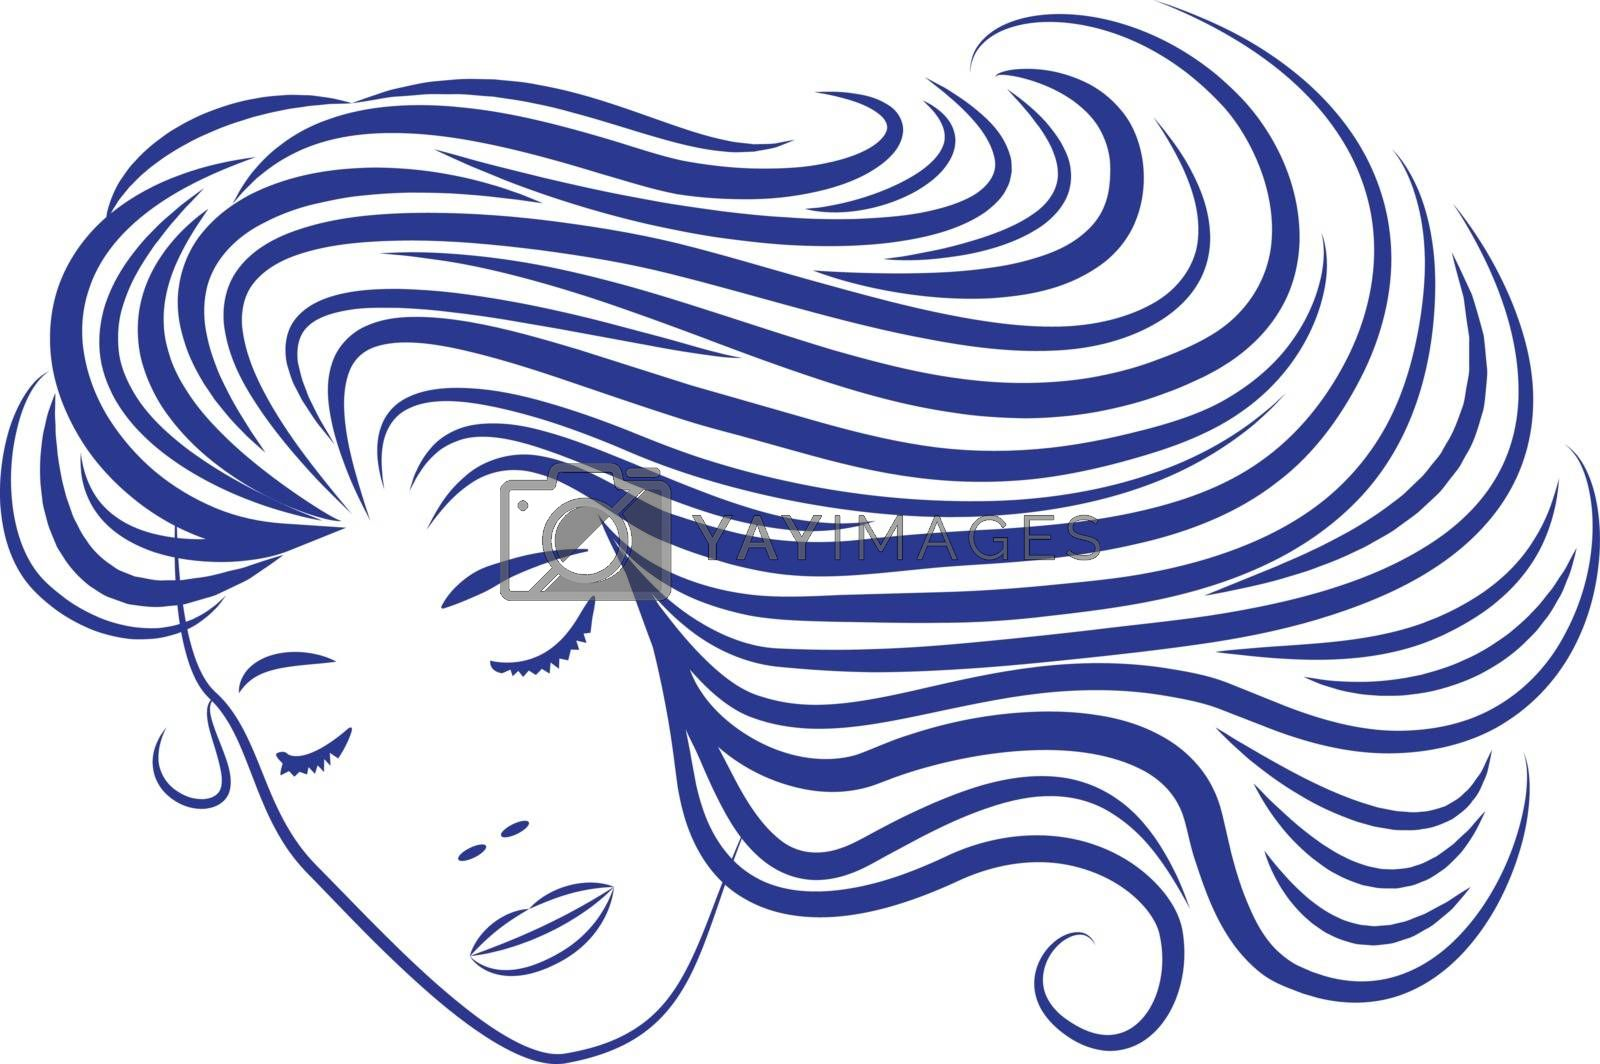 Cartoon woman silhouette with blue hair looking like sea waves. Cartoon sea wave vector illustration on a white background